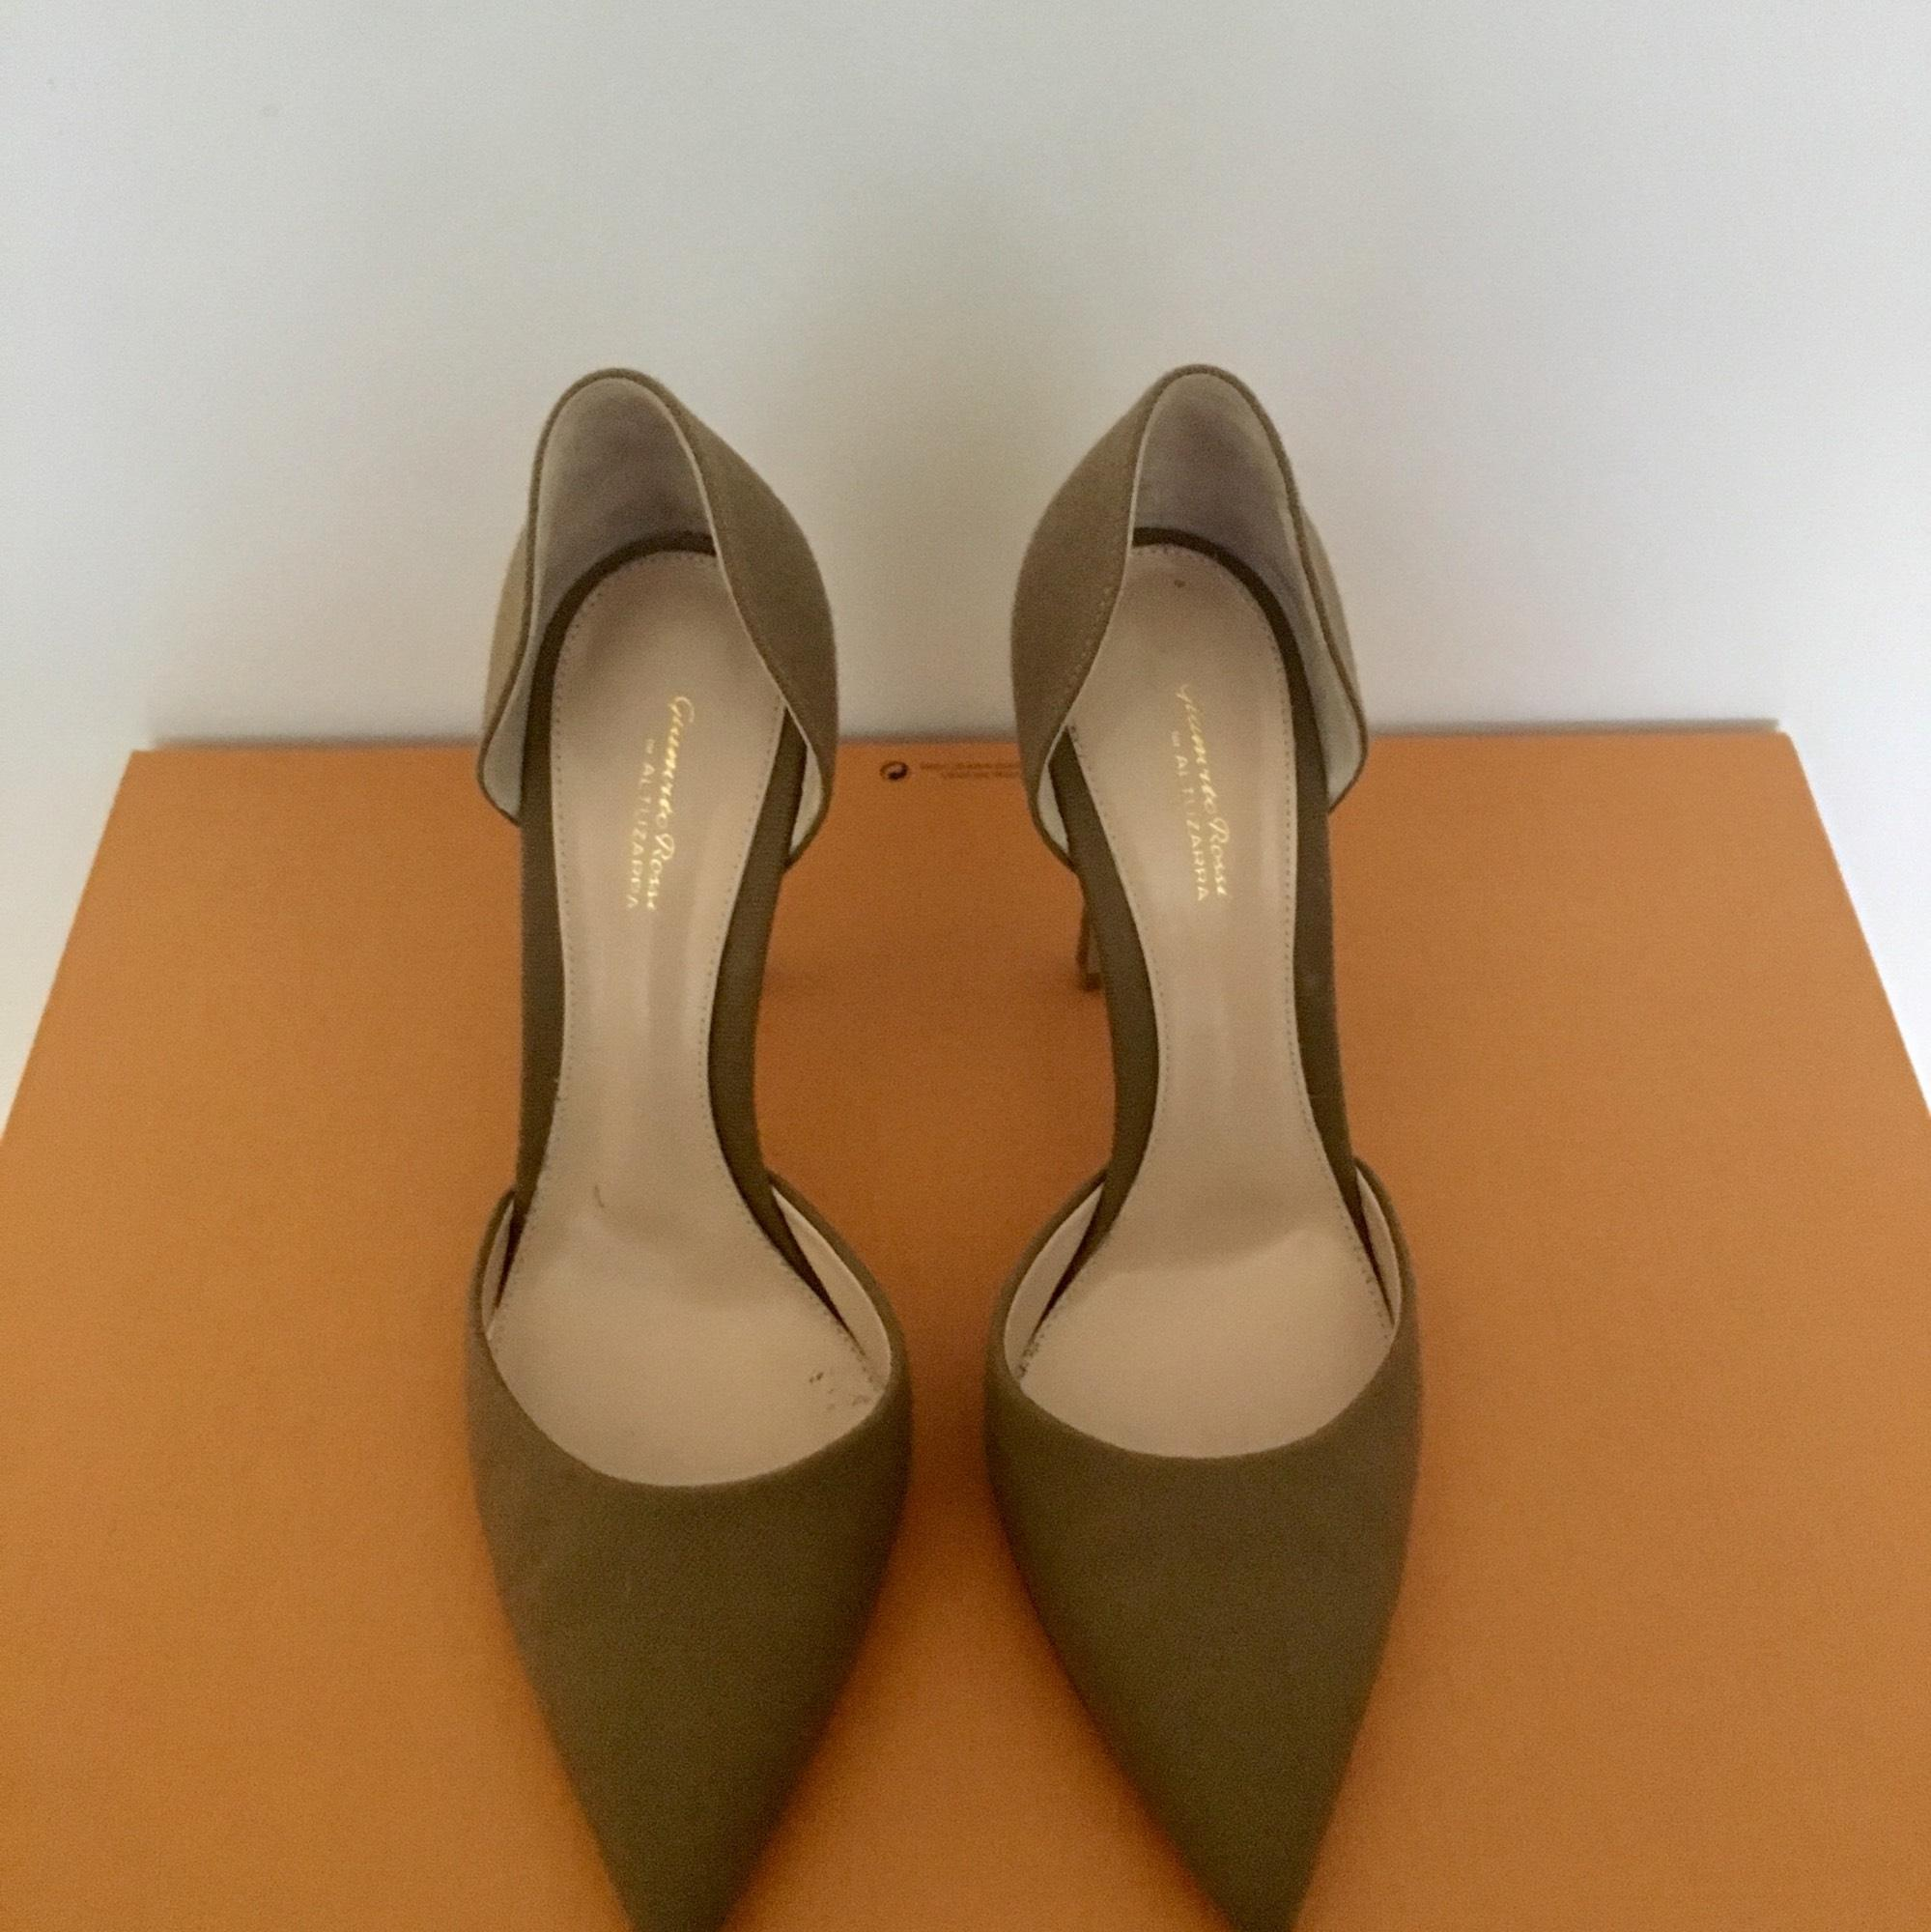 a5bc20818aa0 ... Gianvito Rossi Tan Color For Altuzarra-limited Edition Pumps Size US US  US 7.5 Regular ...